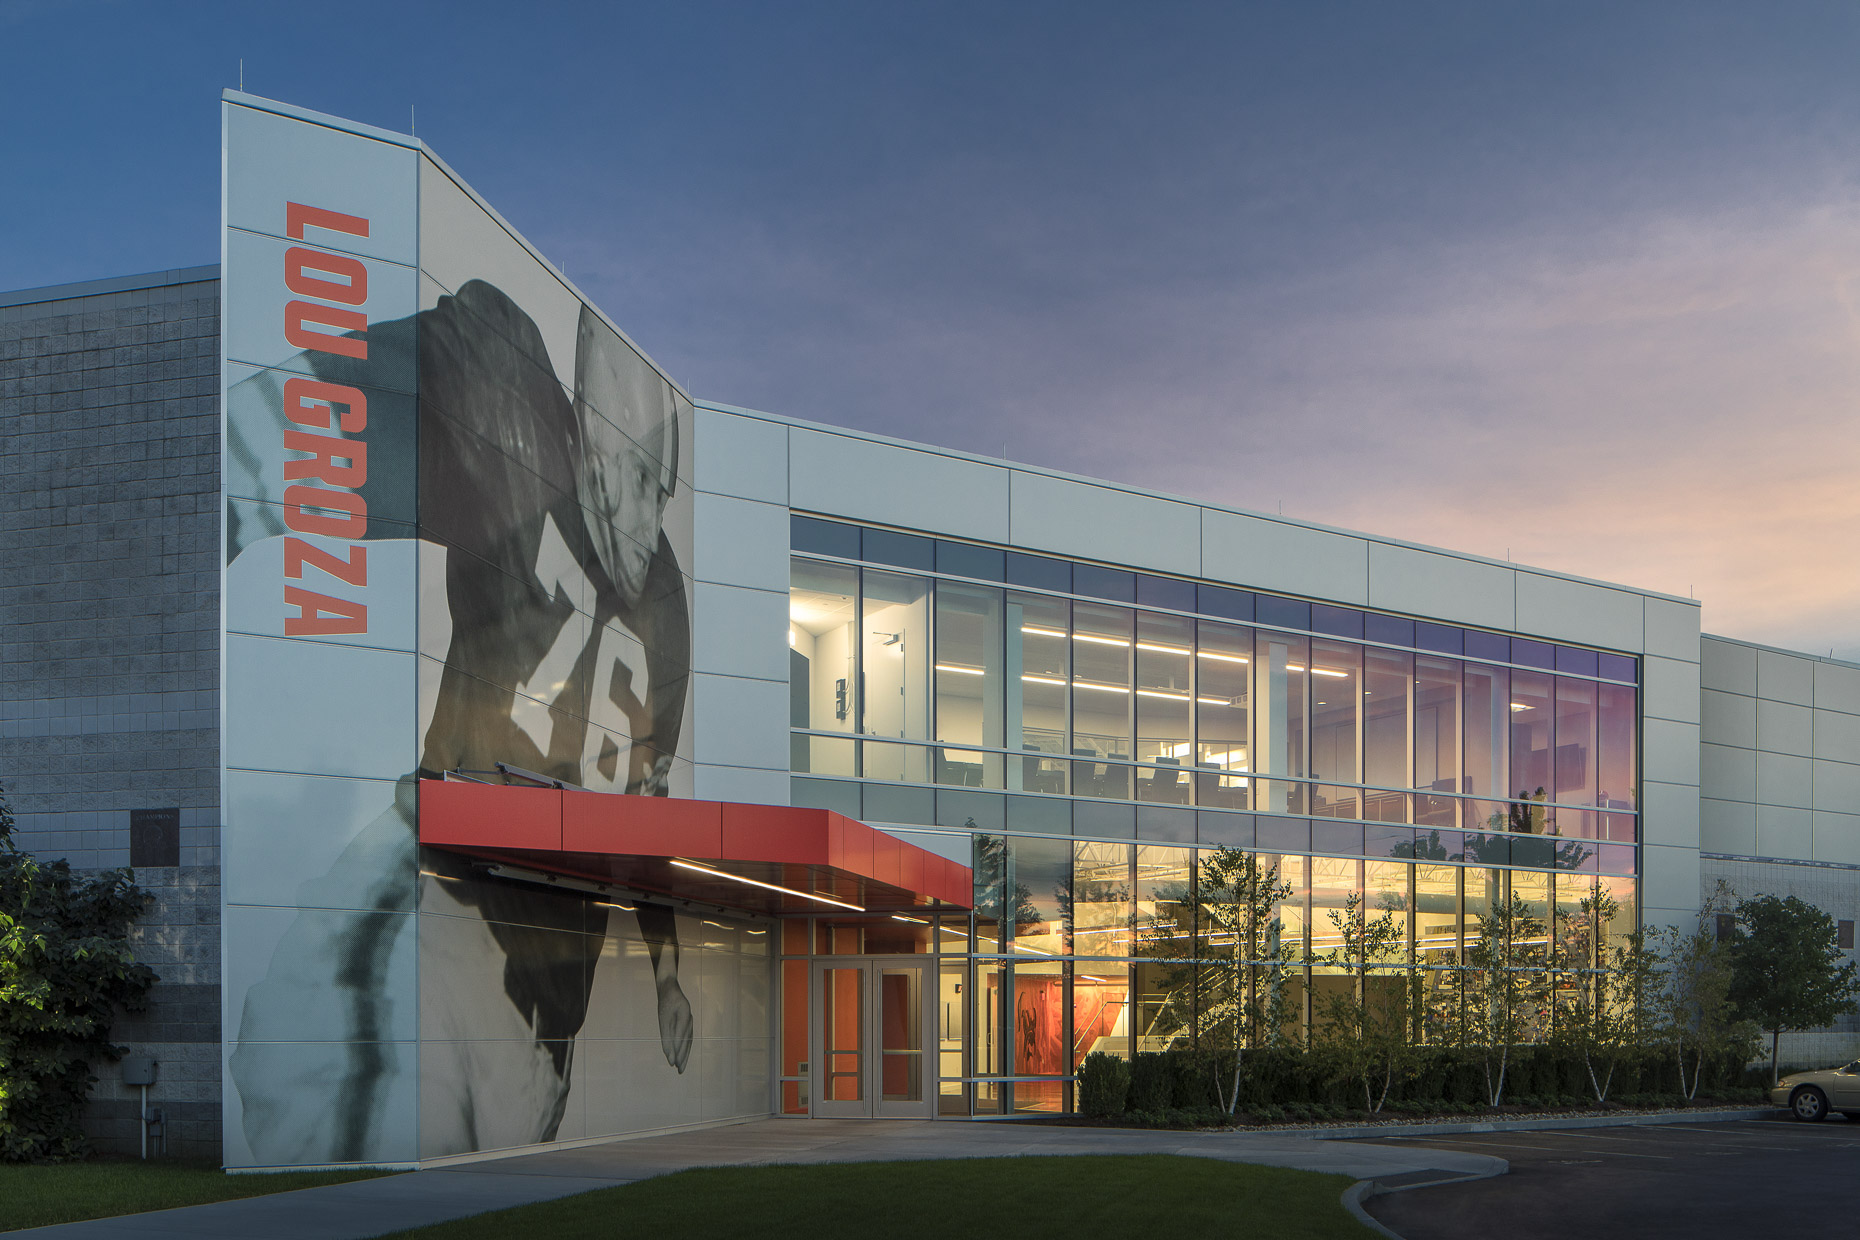 Cleveland Browns Headquarters Training Facility by Vocon photographed by Brad Feinknopf based in Columbus, Ohio